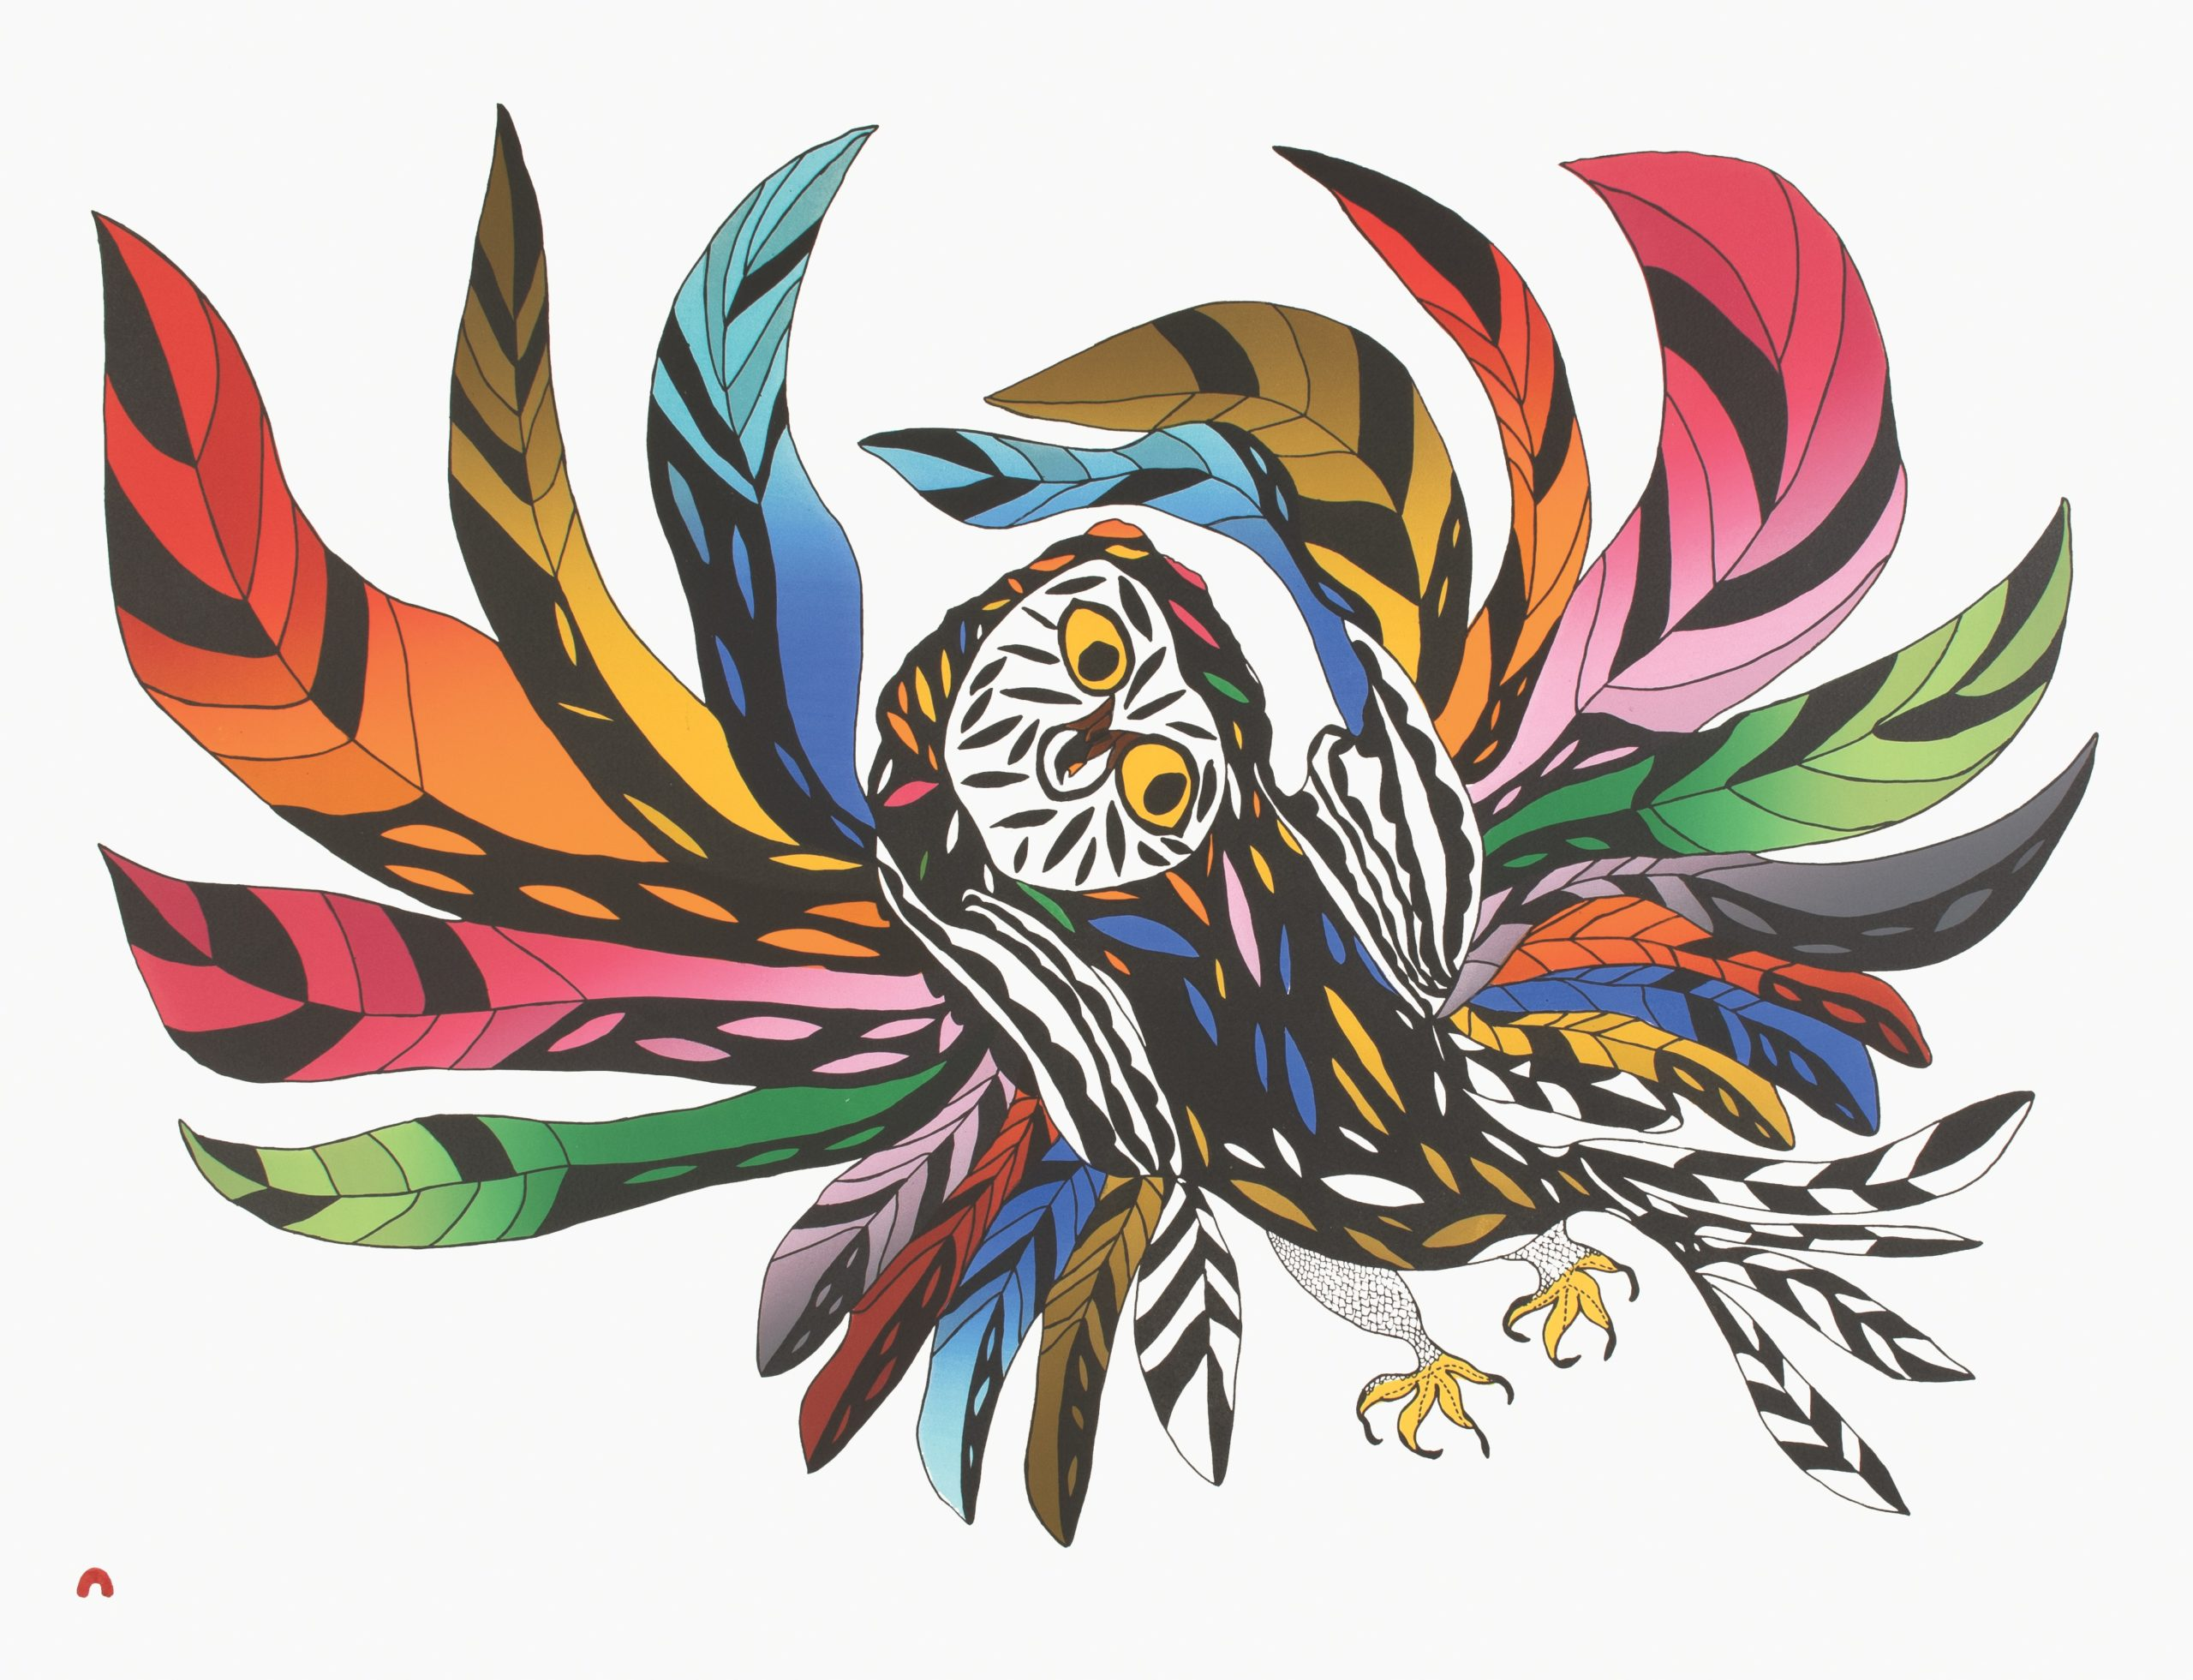 Festive Owl by Ooloosie Saila - 2021 Cape Dorset Annual Print Collection